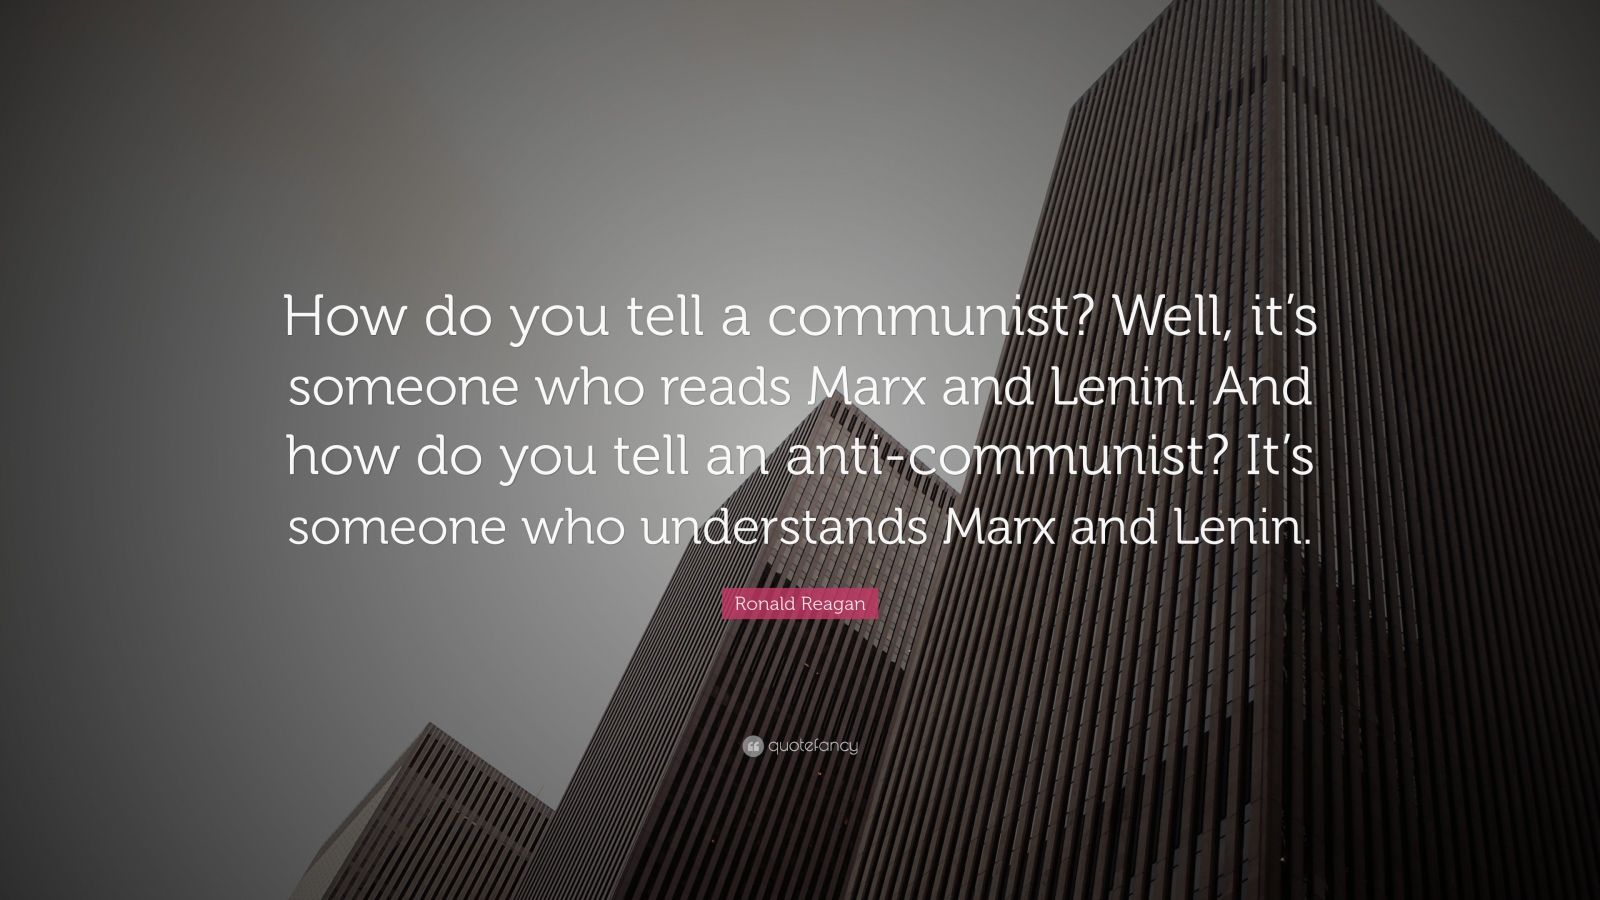 Business Quotes How Do You Tell A Communist Well Its Someone Who